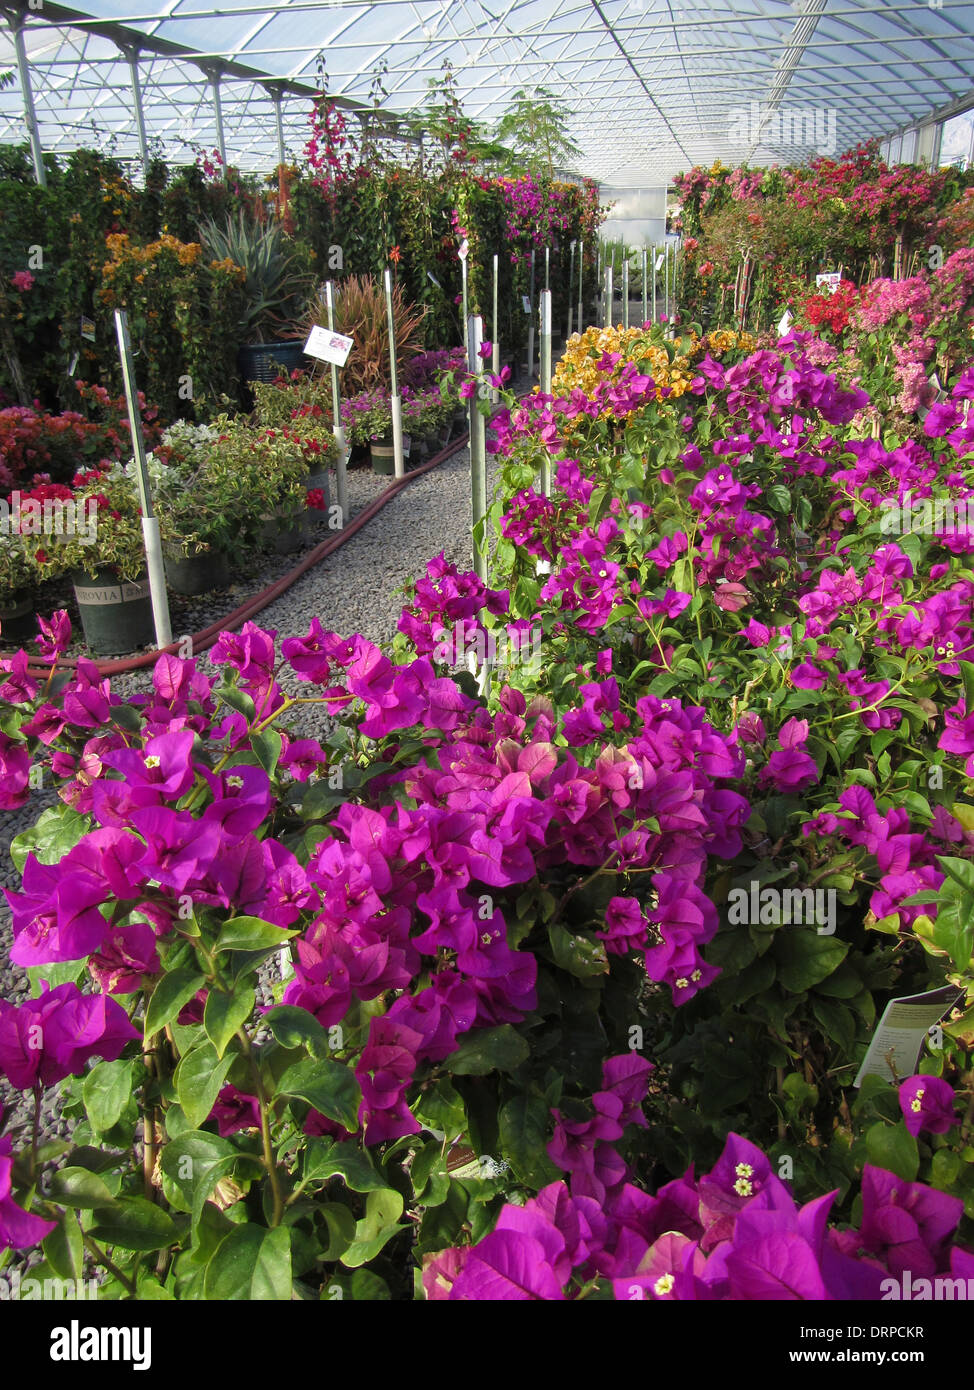 Variuos colors of Bougainvillea growing in a nursery hot house - Stock Image